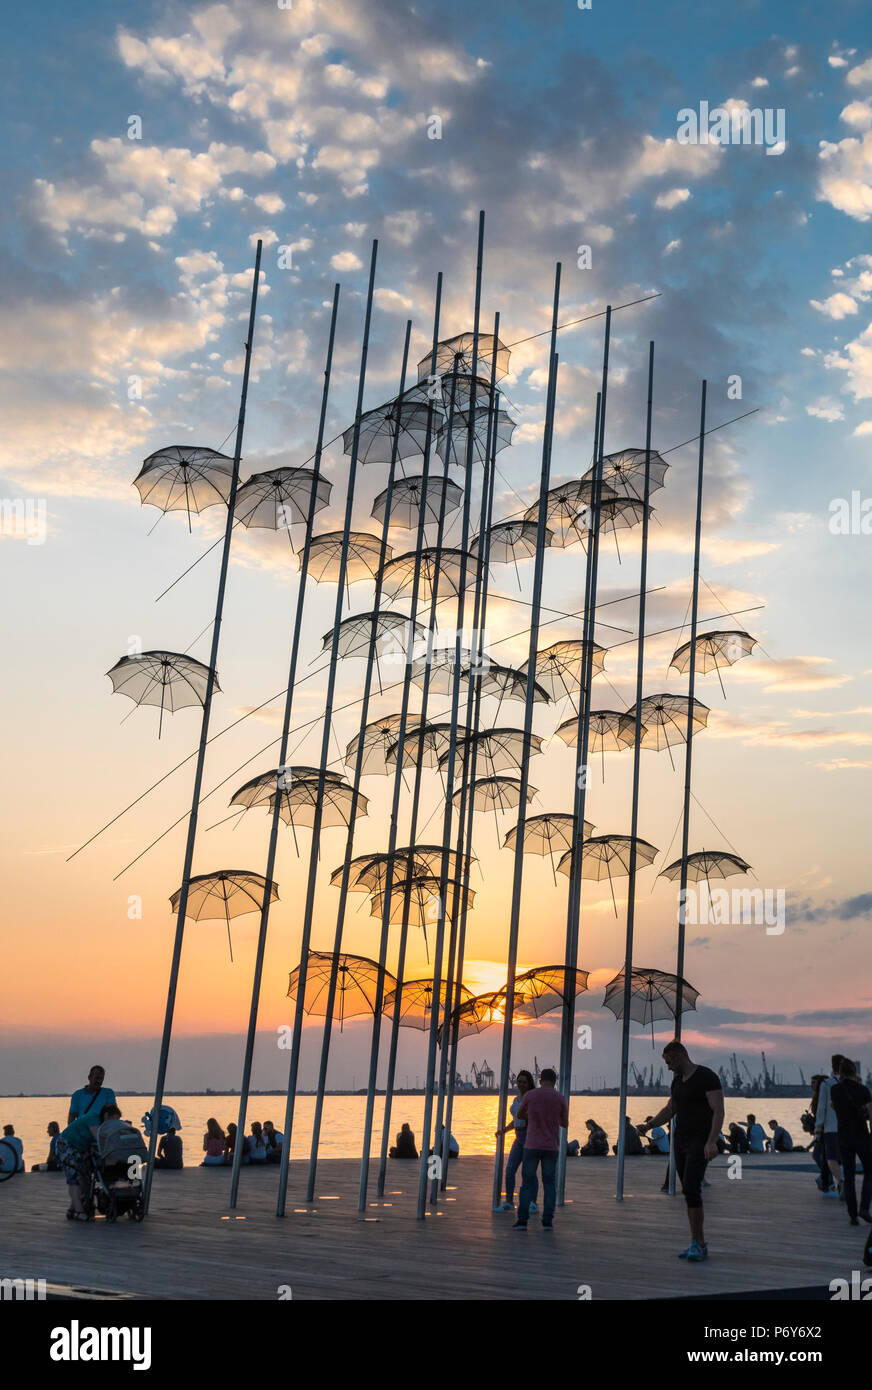 Georgios Zongolopoulos umbrellas sculpture at sunset on Thessaloniki waterfront, Macedonia, Northern Greece - Stock Image